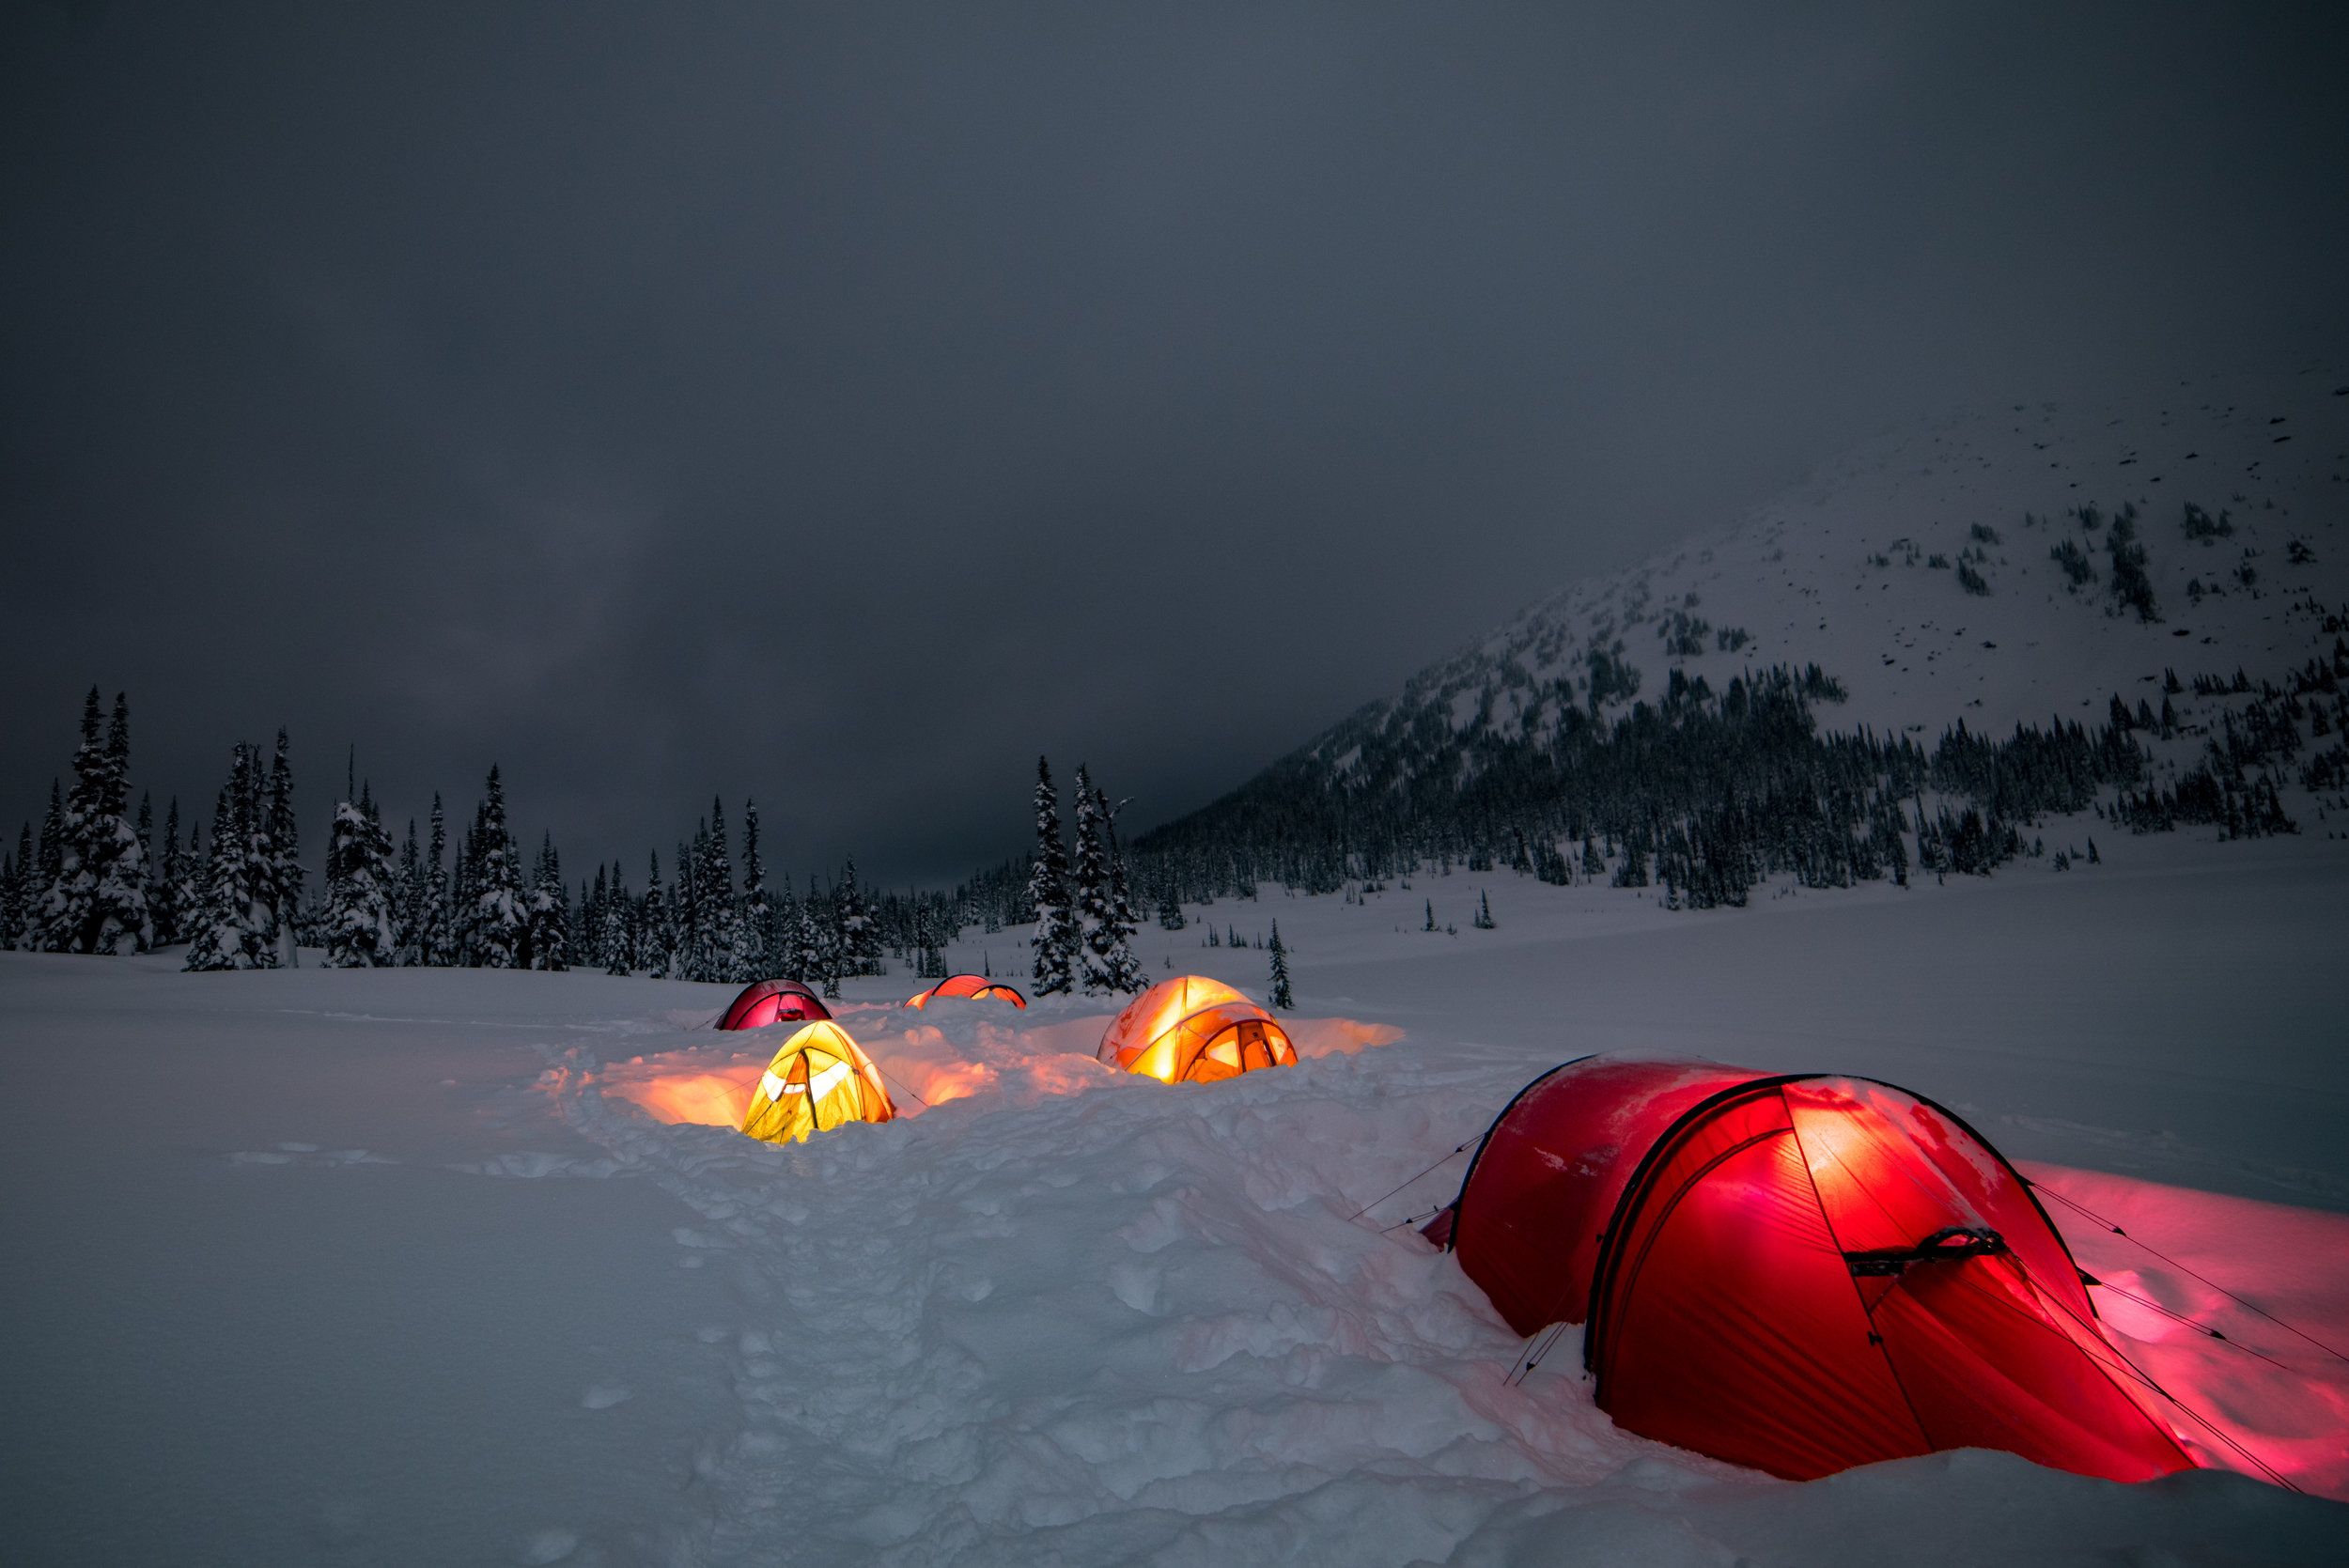 Everyone gone to bed ready to cozy into a warm sleeping bag. Photo Phil Tomlinson.